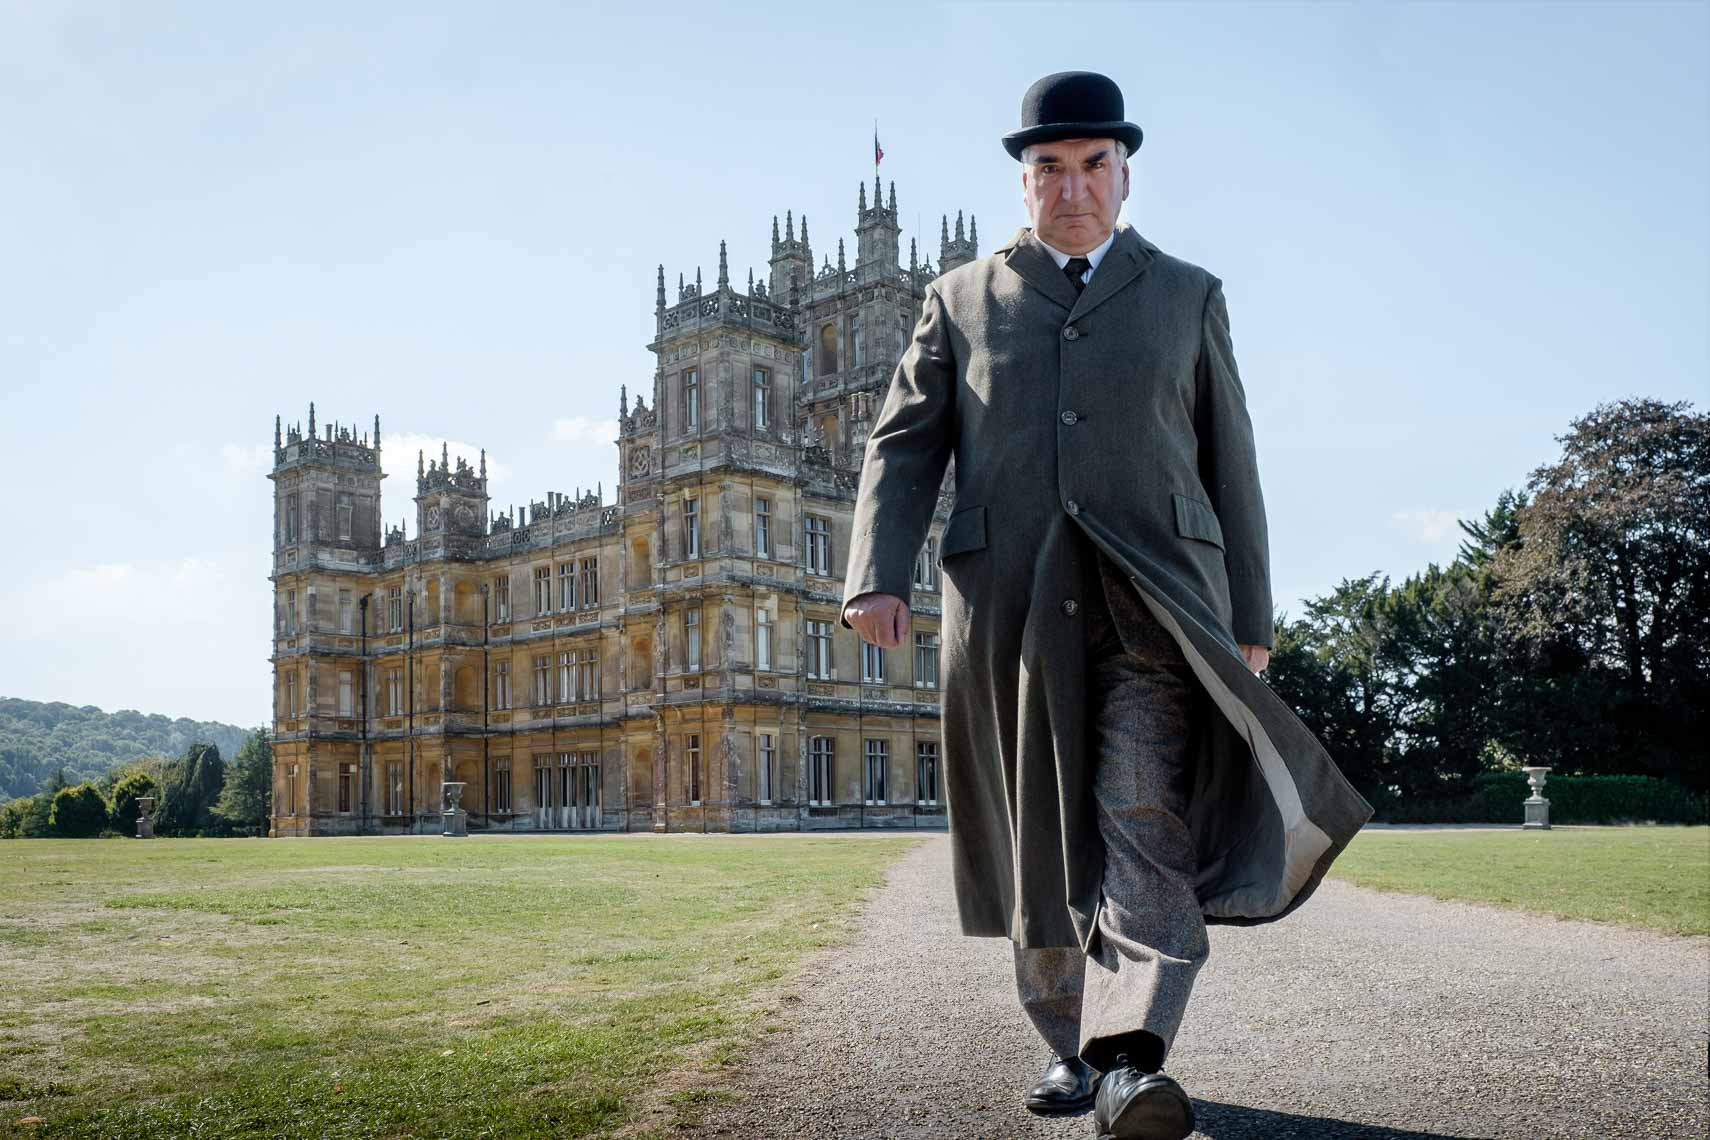 downton-abbey_SXogW5